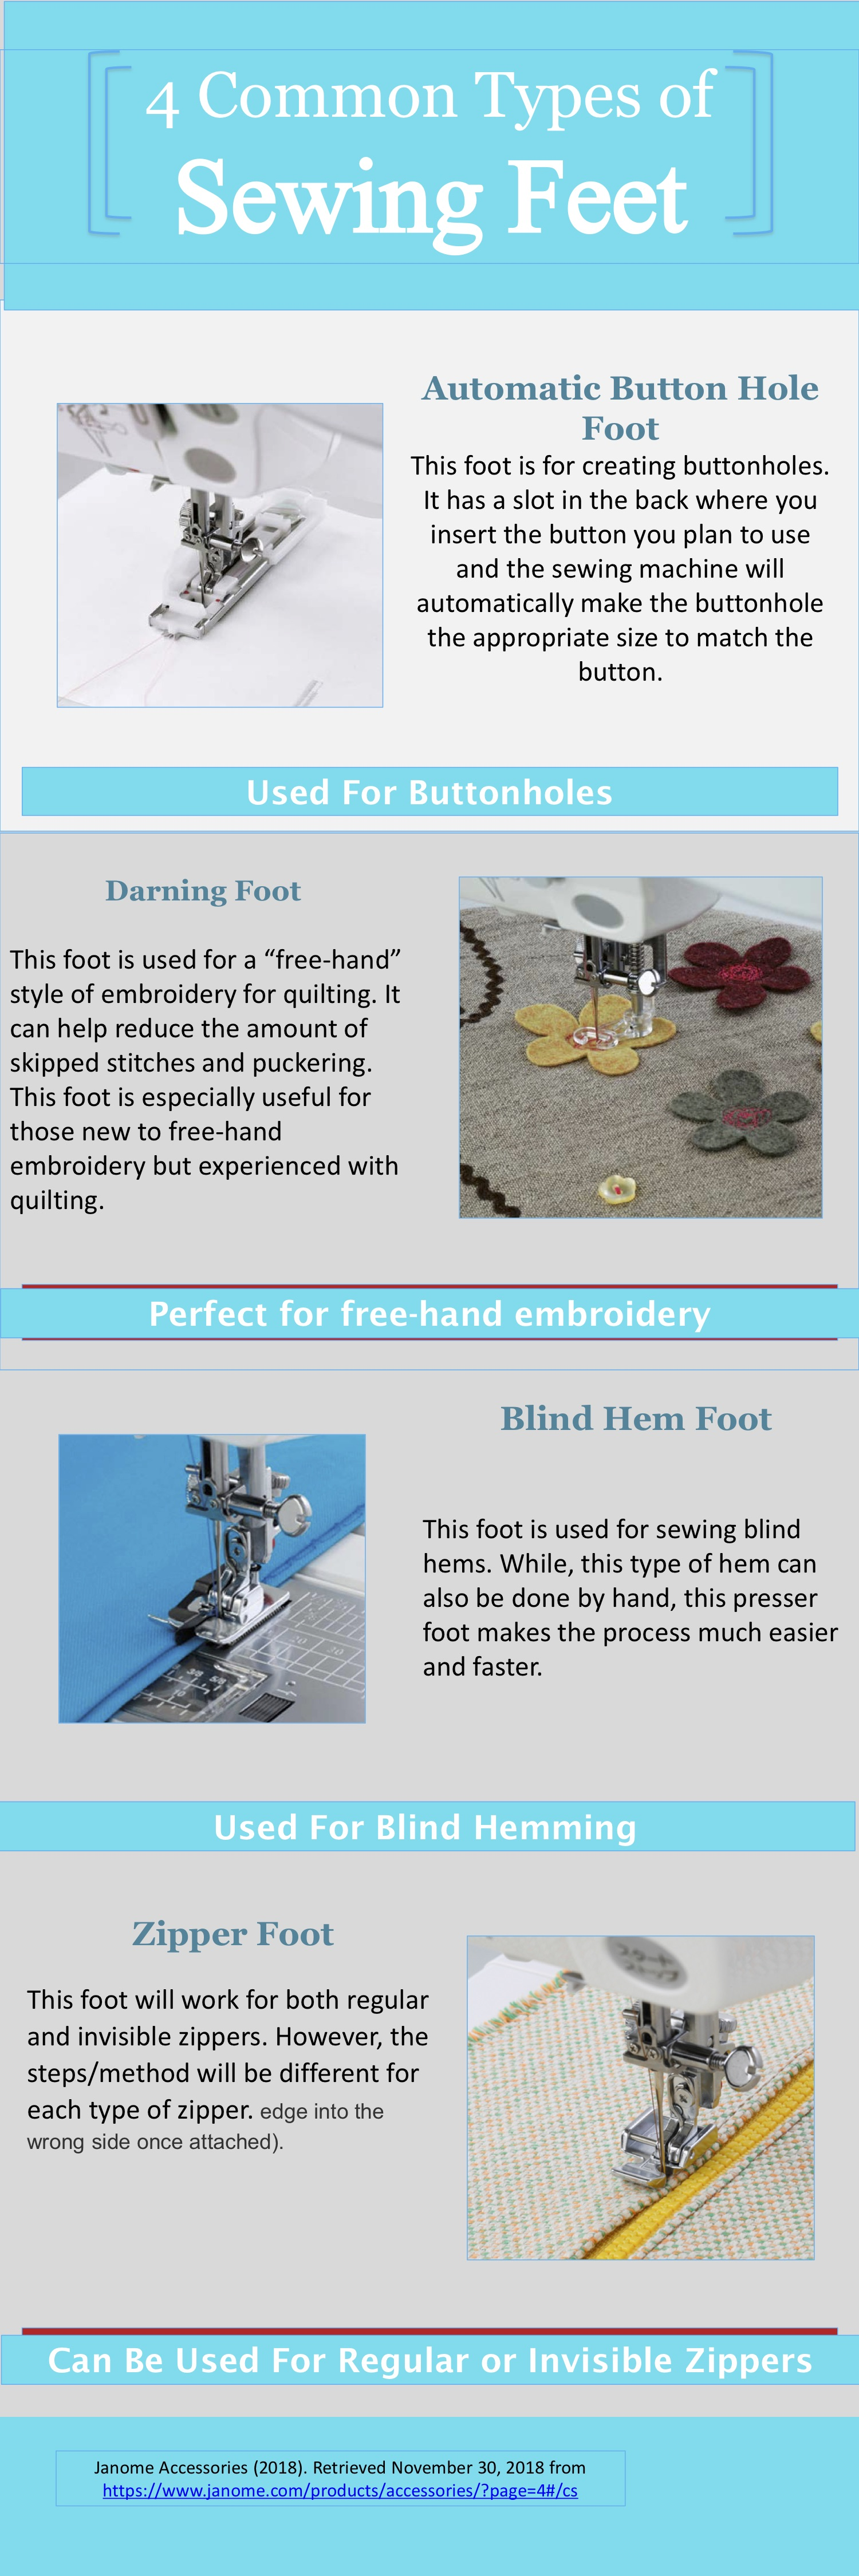 sewing feet infographic: blind-hem foot, zipper foot, darning foot, buttonhole foot.